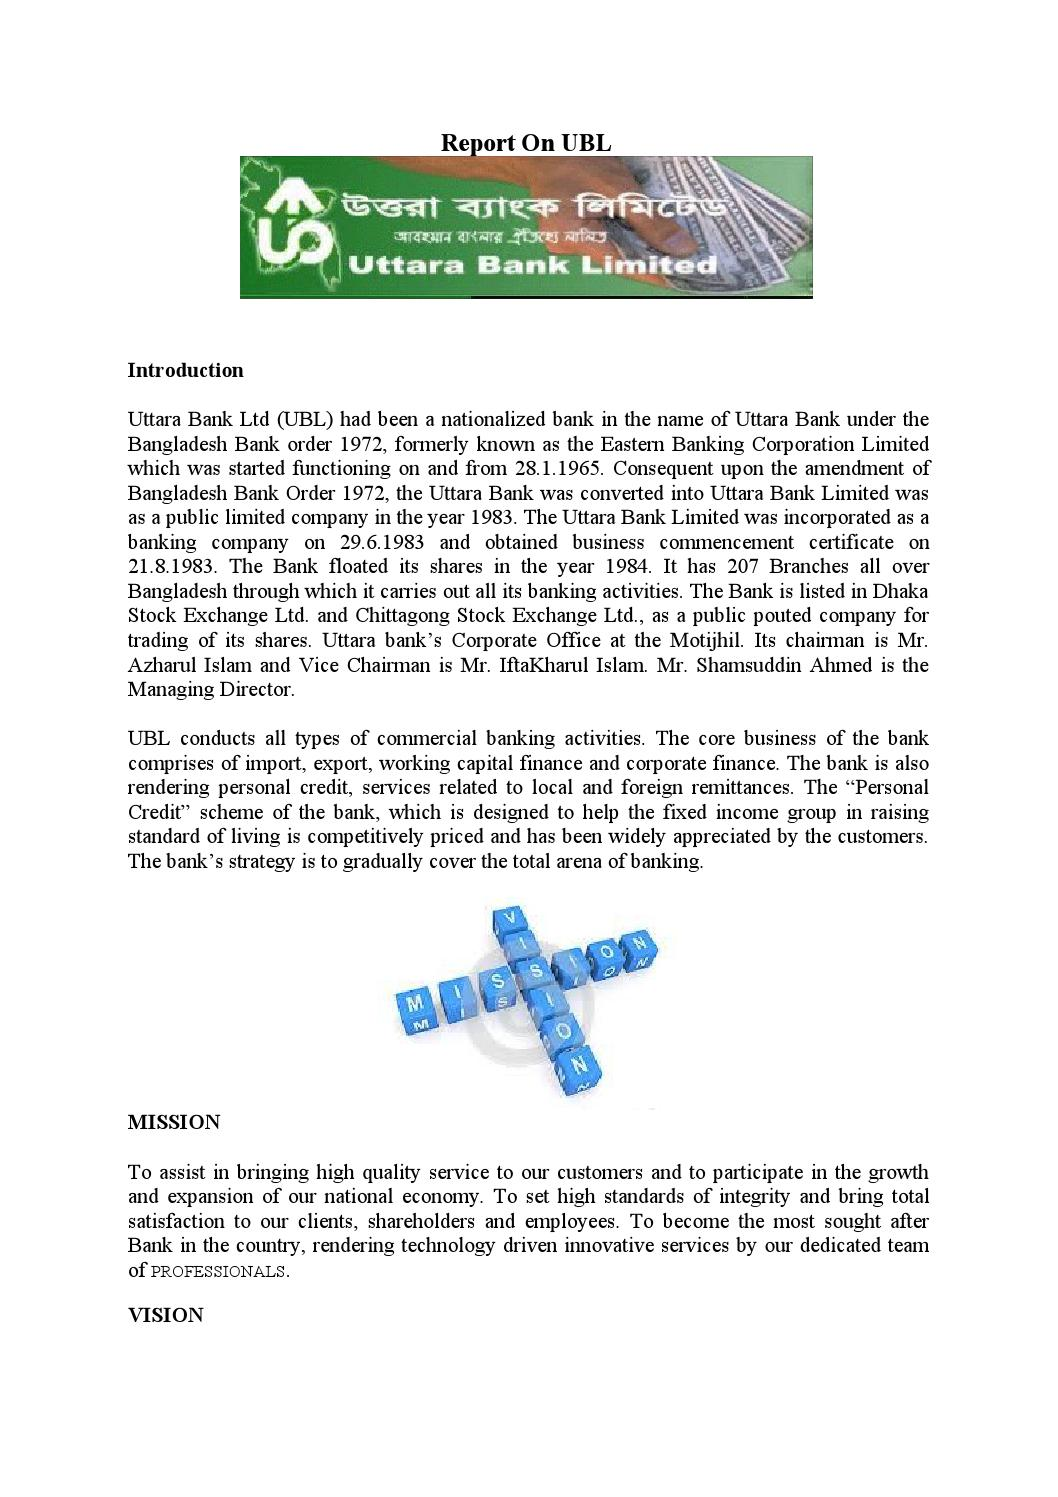 credit rating of uttara bank limited essay Internship report on an analysis of financial performance and foreign exchange activities of uttara bank limited course name: internship (bus-699.